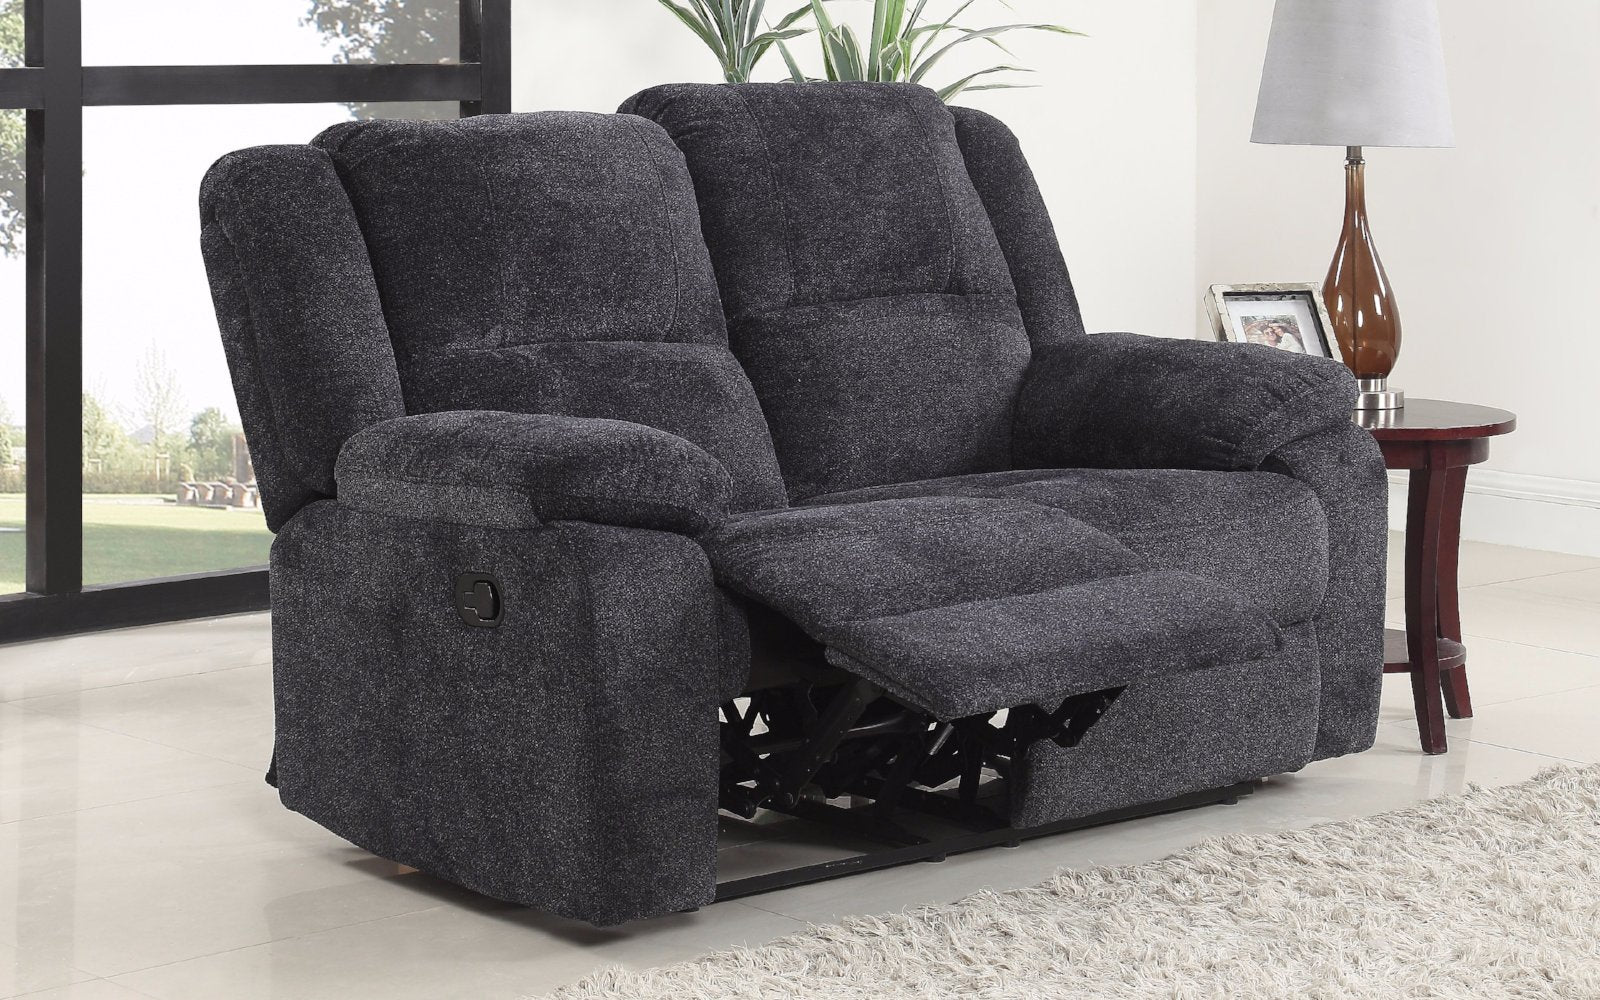 ... Asturias Traditional Classic Microfiber Double Recliner Loveseat Dark Grey Lifestyle ... & Asturias Traditional Classic Microfiber Double Recliner Loveseat ... islam-shia.org